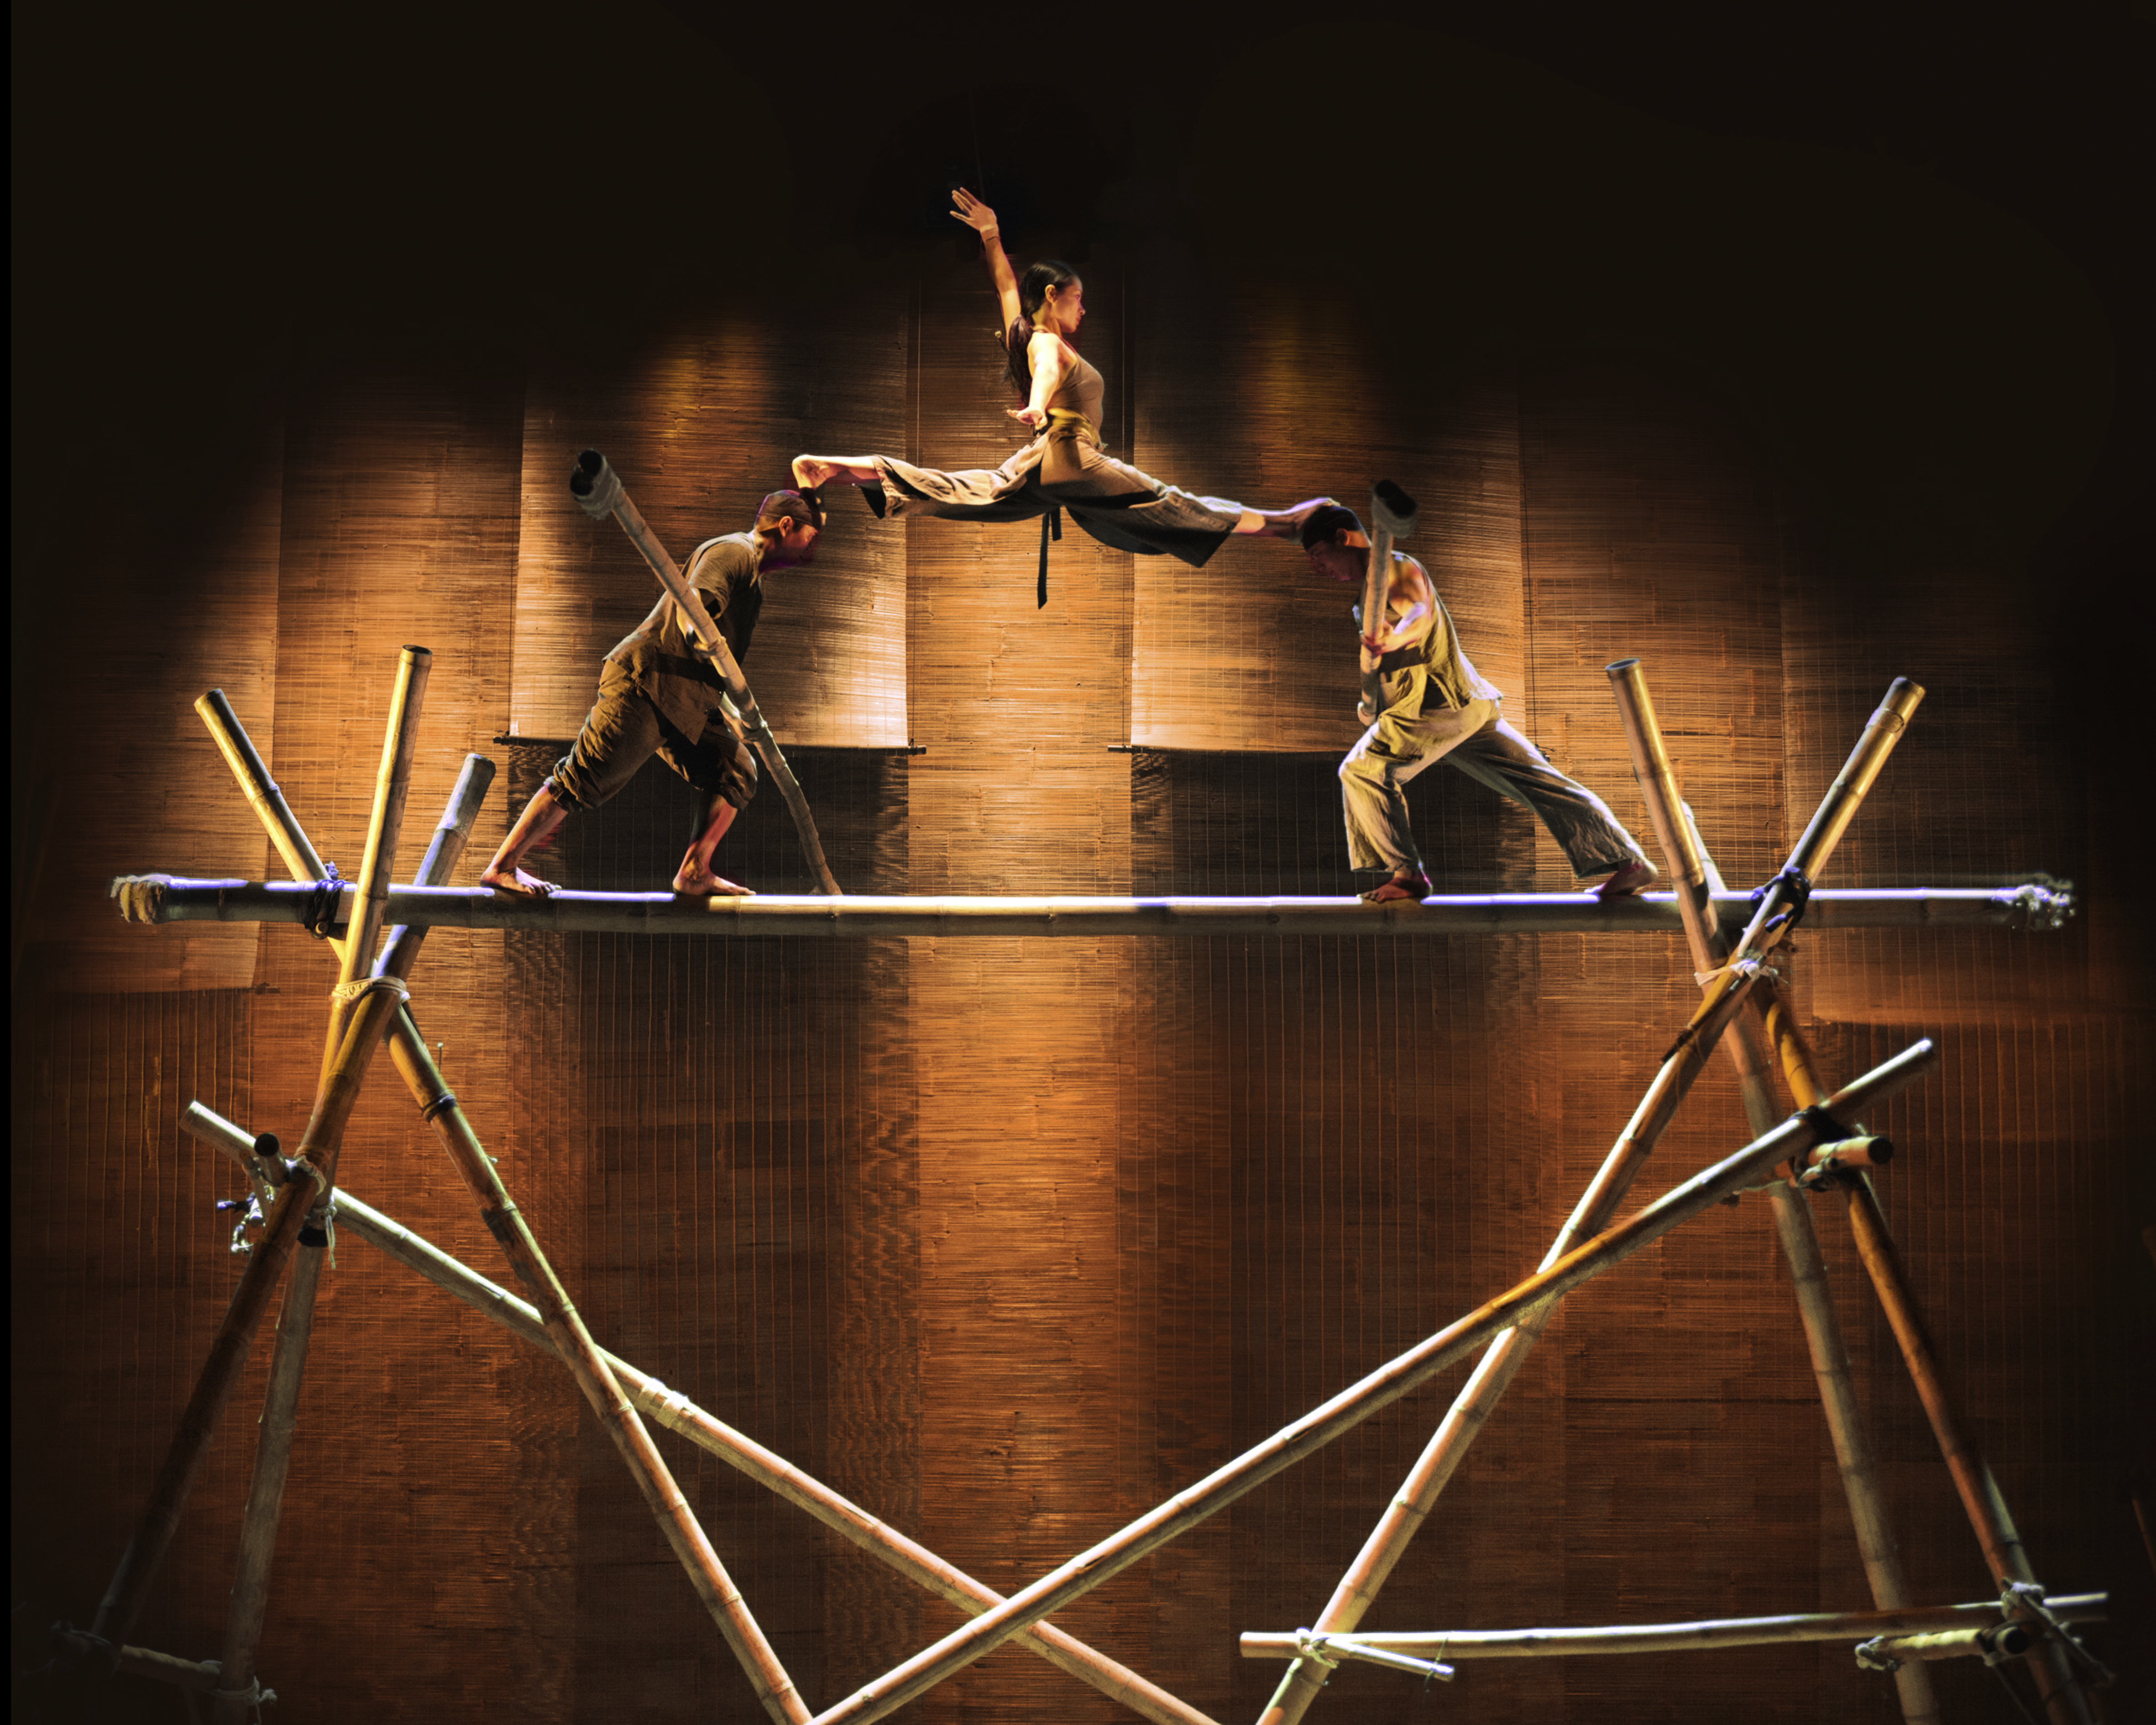 Vietnamese circus performers balancing on stage